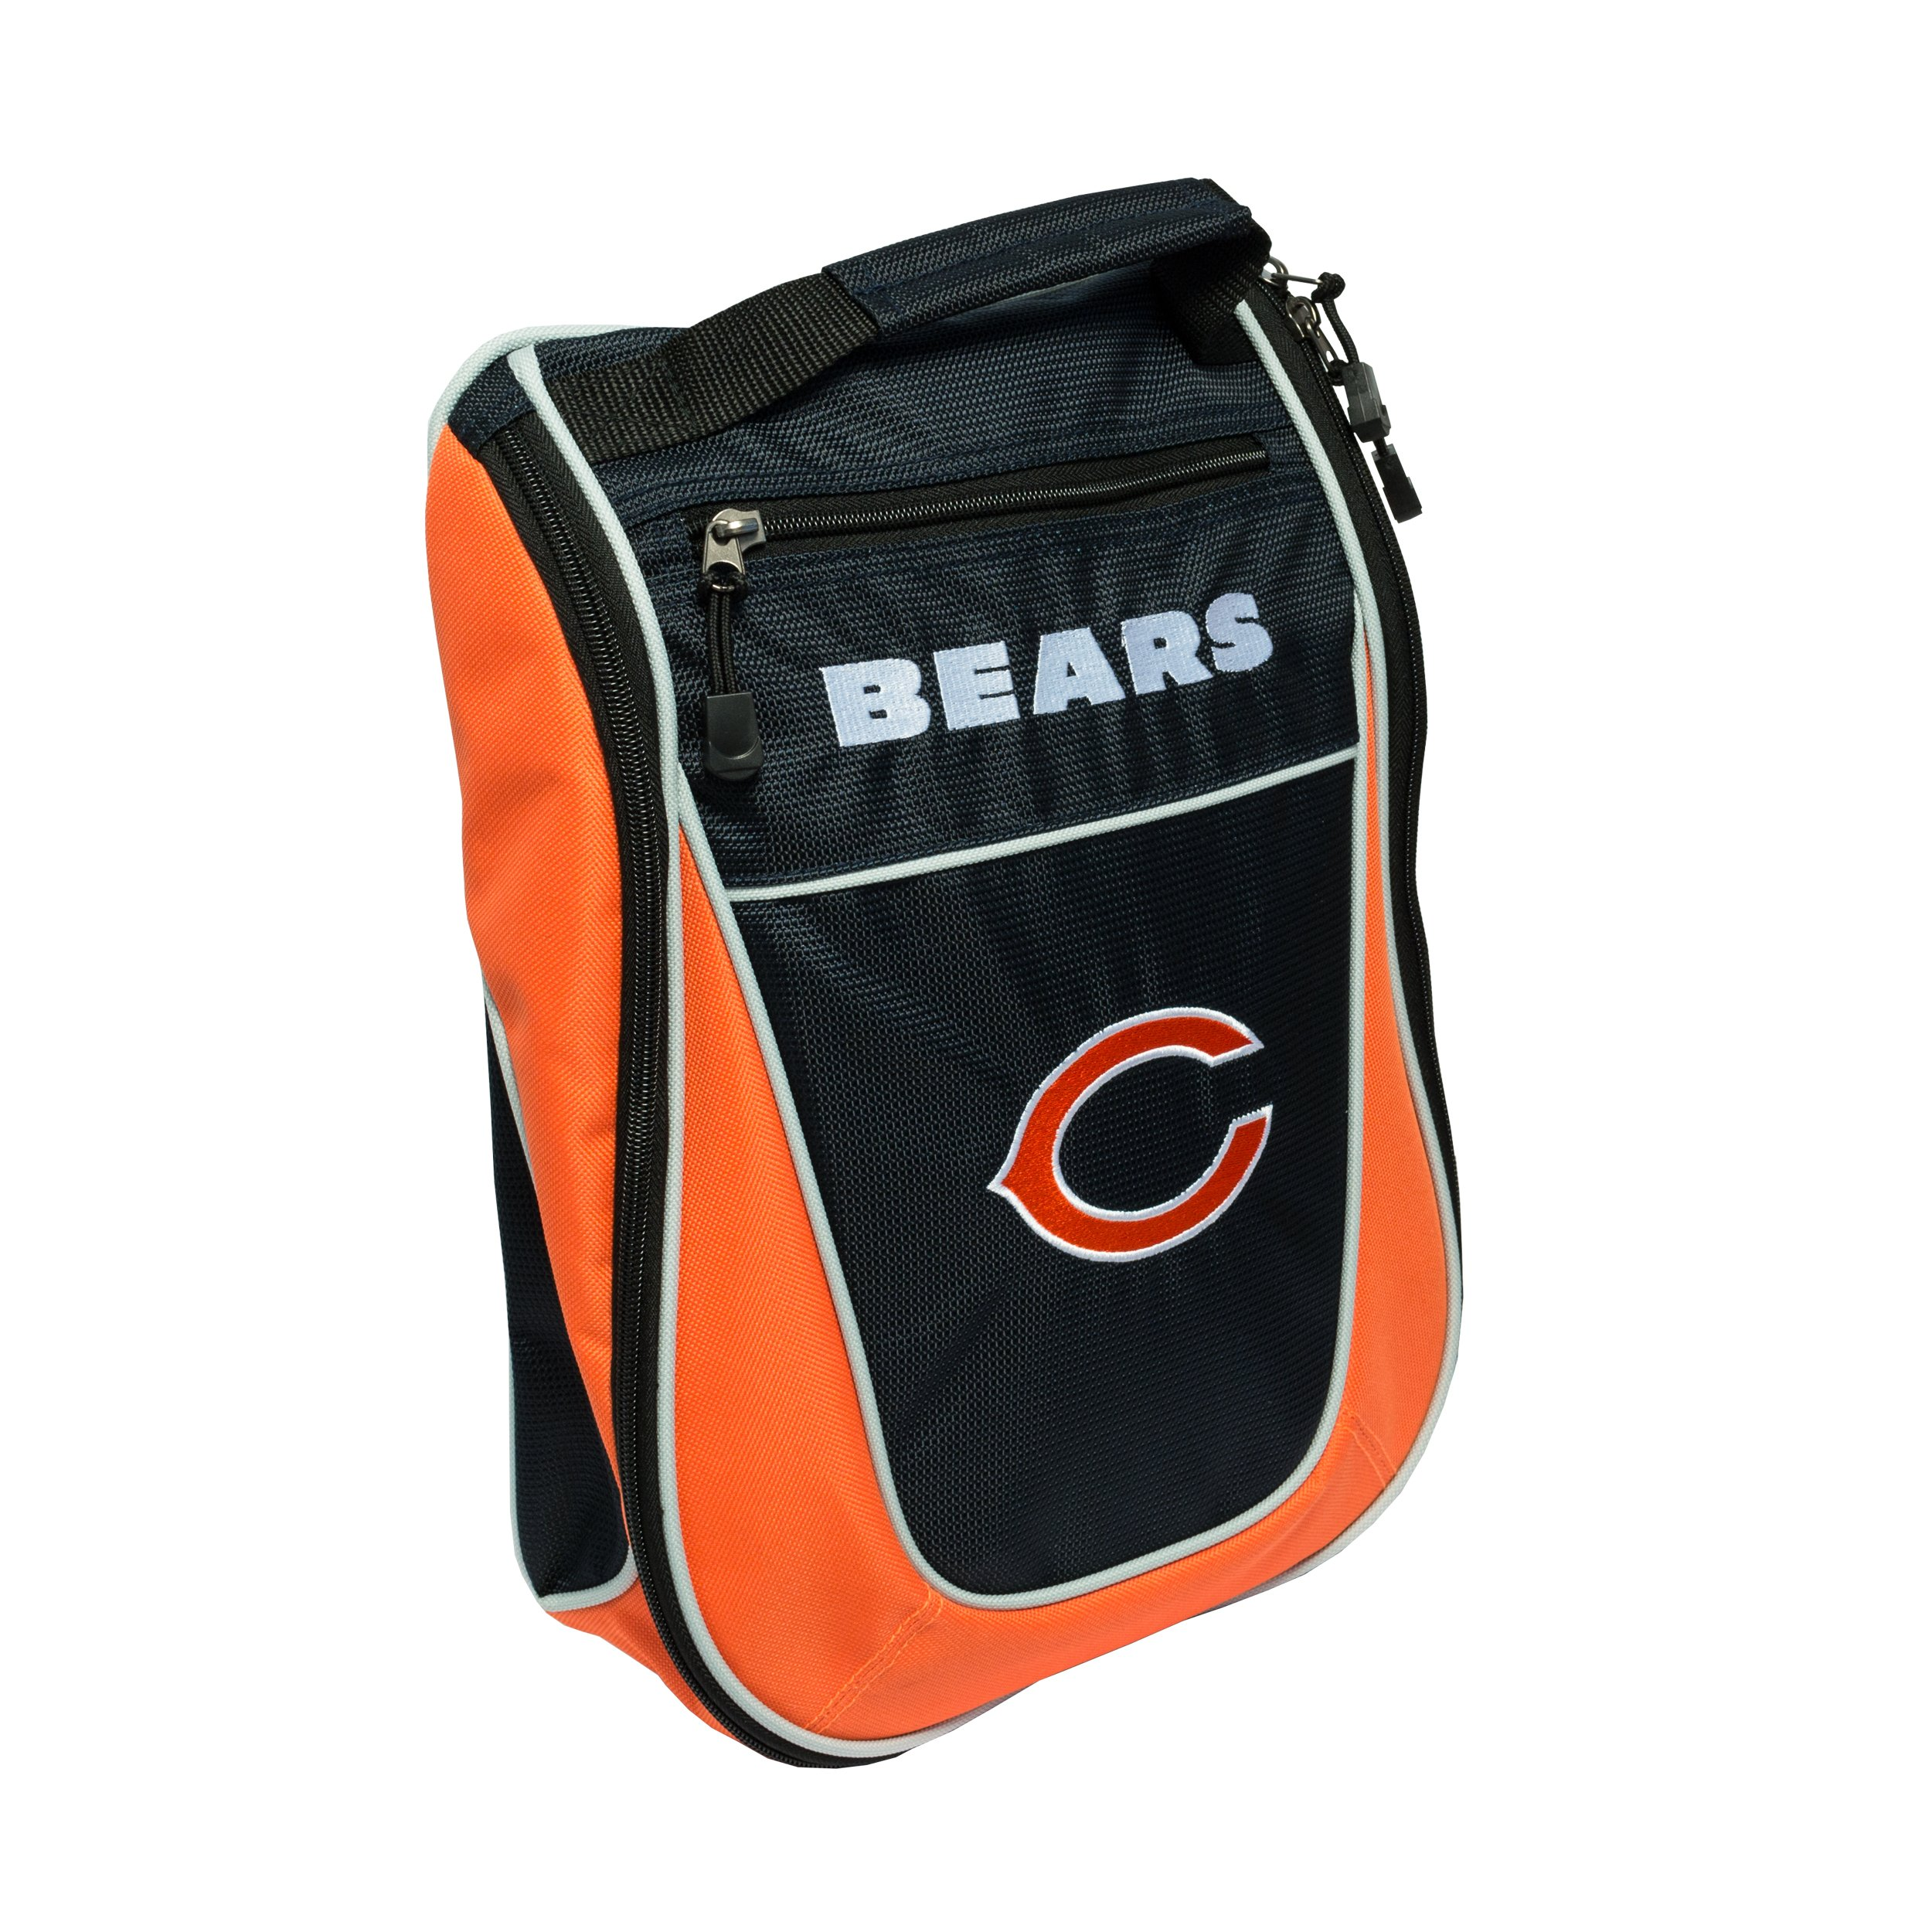 Team Golf NFL Chicago Bears Travel Golf Shoe Bag, Reduce Smells, Extra Pocket for Storage, Carry Handle by Team Golf